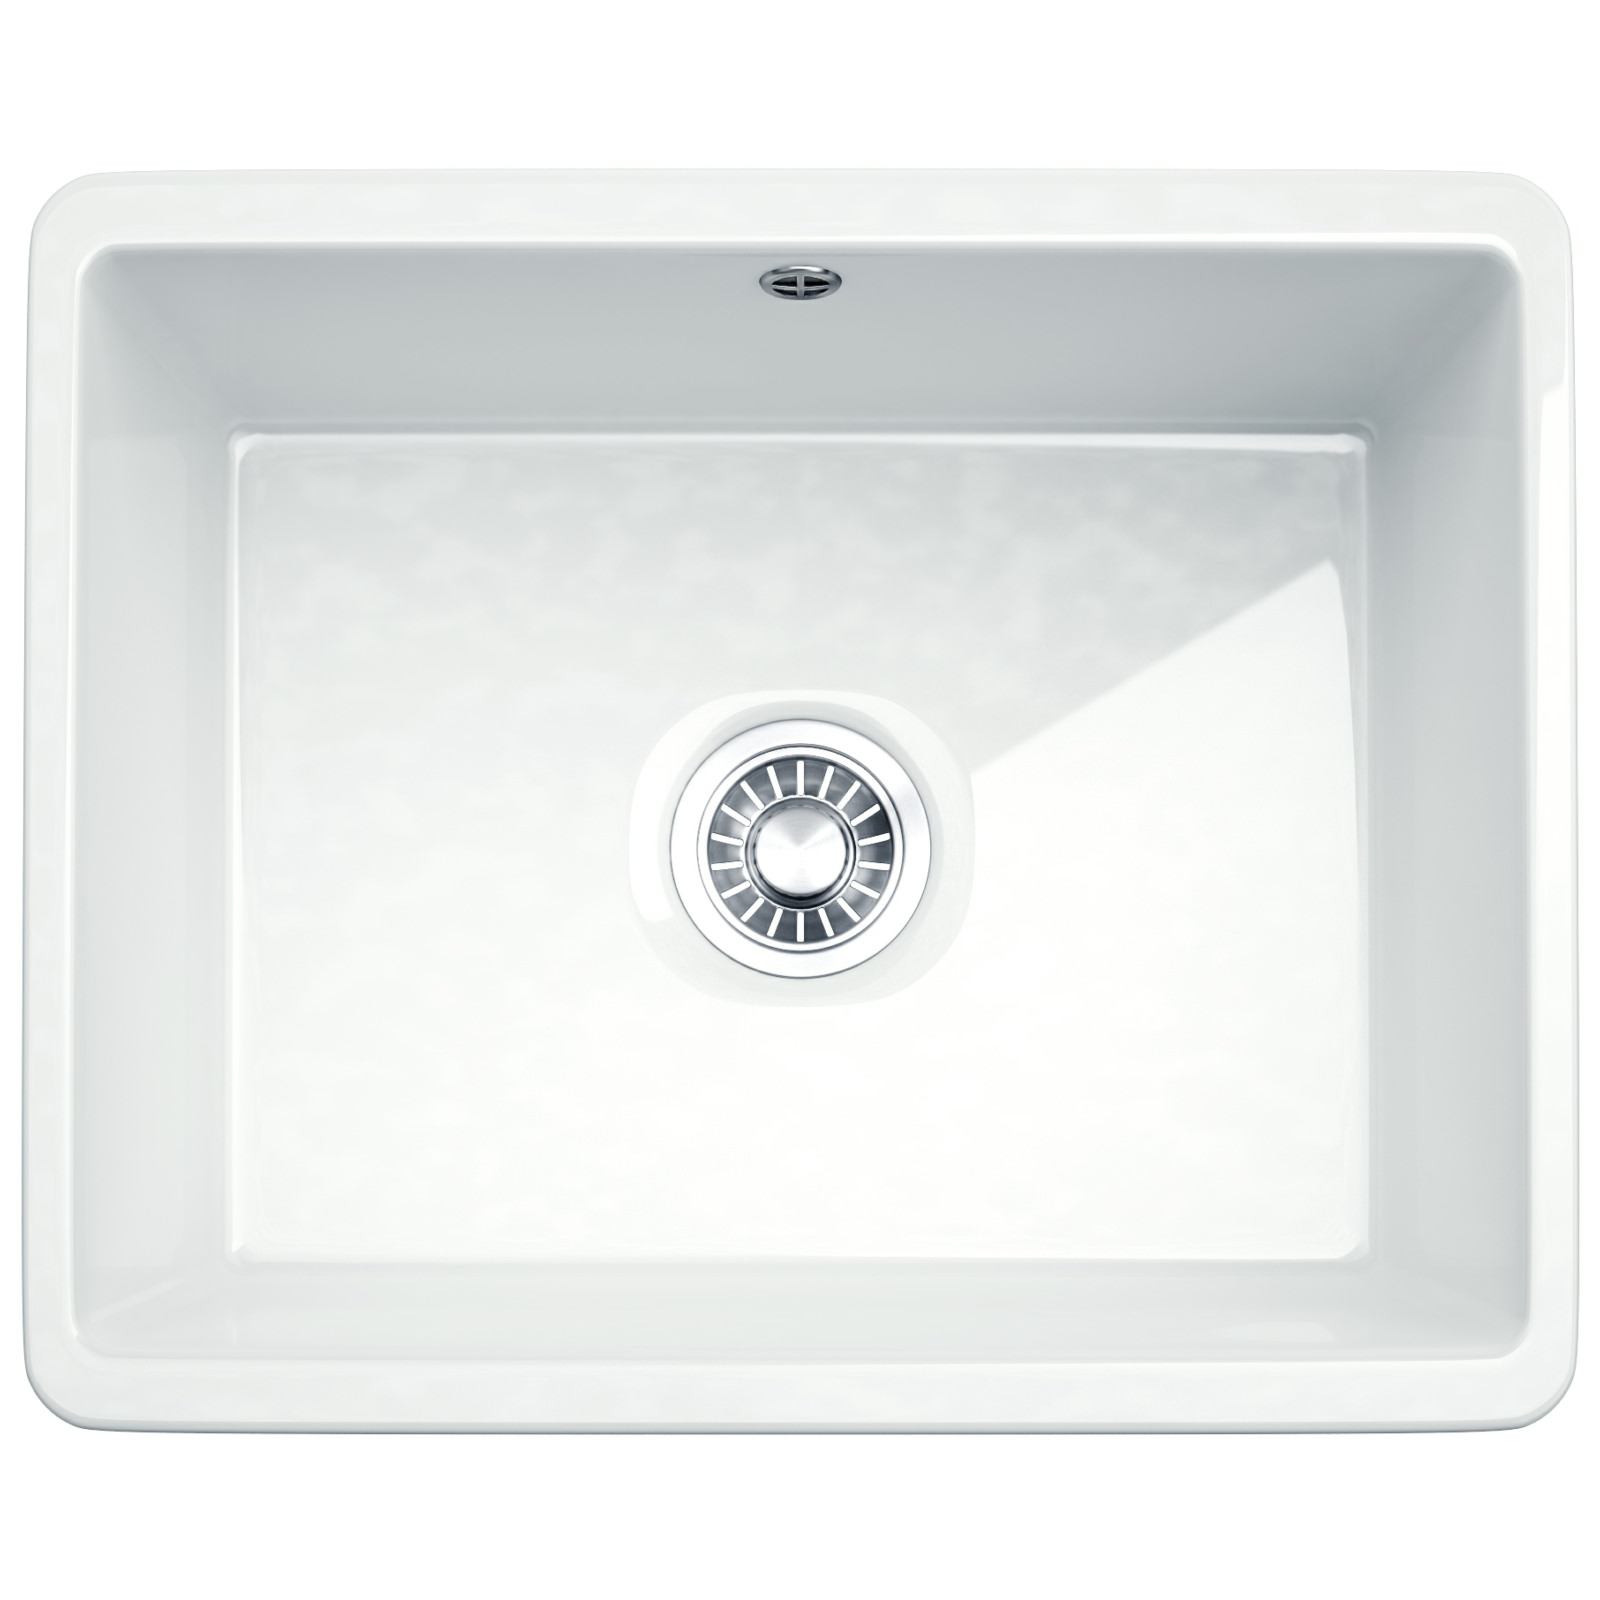 Franke Kubus Kbk 110 50 Ceramic 1 0 Bowl Undermount Kitchen Sink